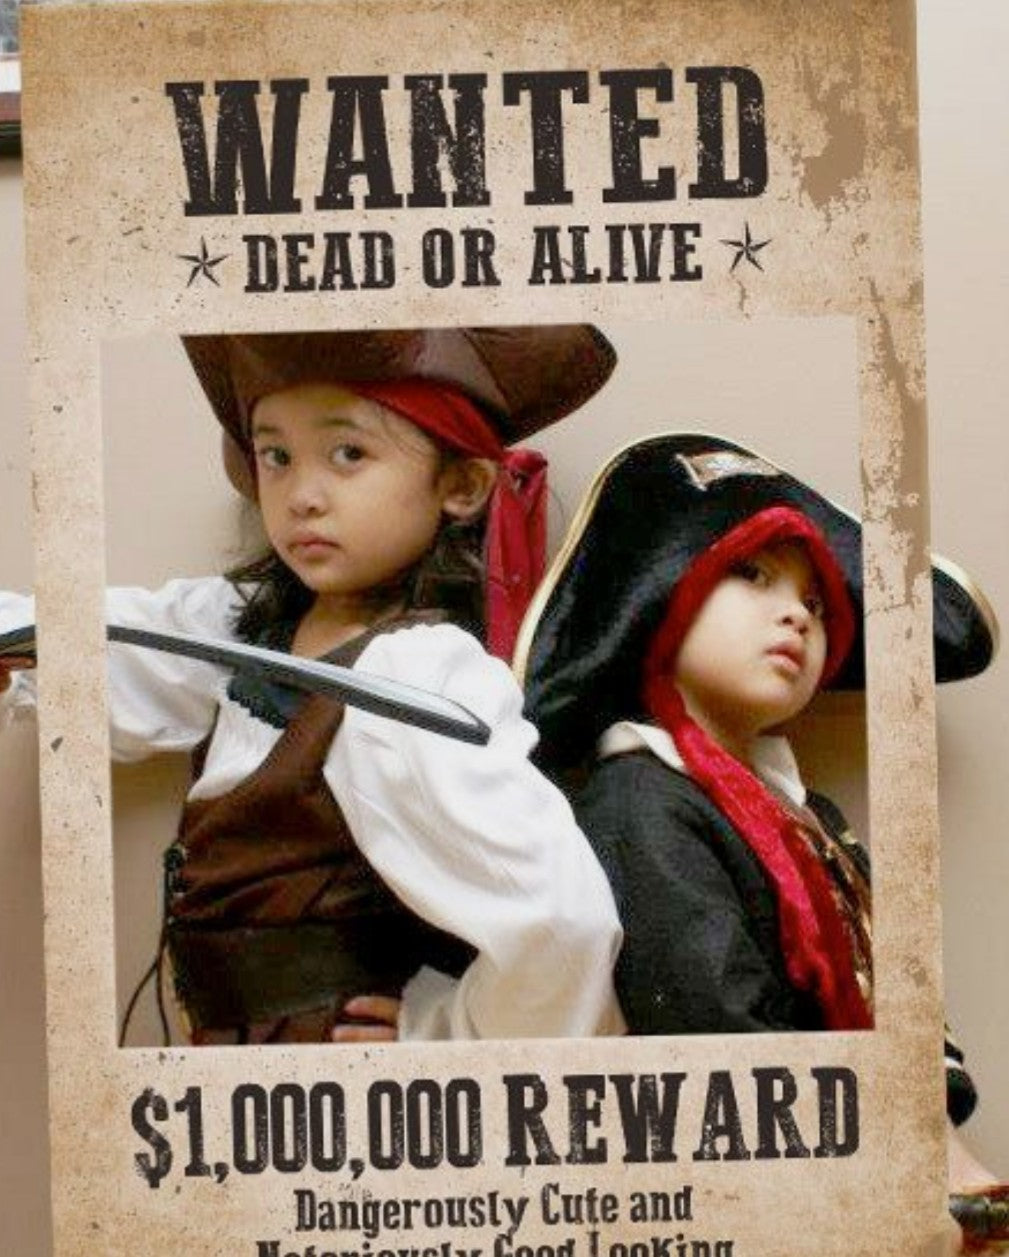 Walk the plank - Pirate themed party